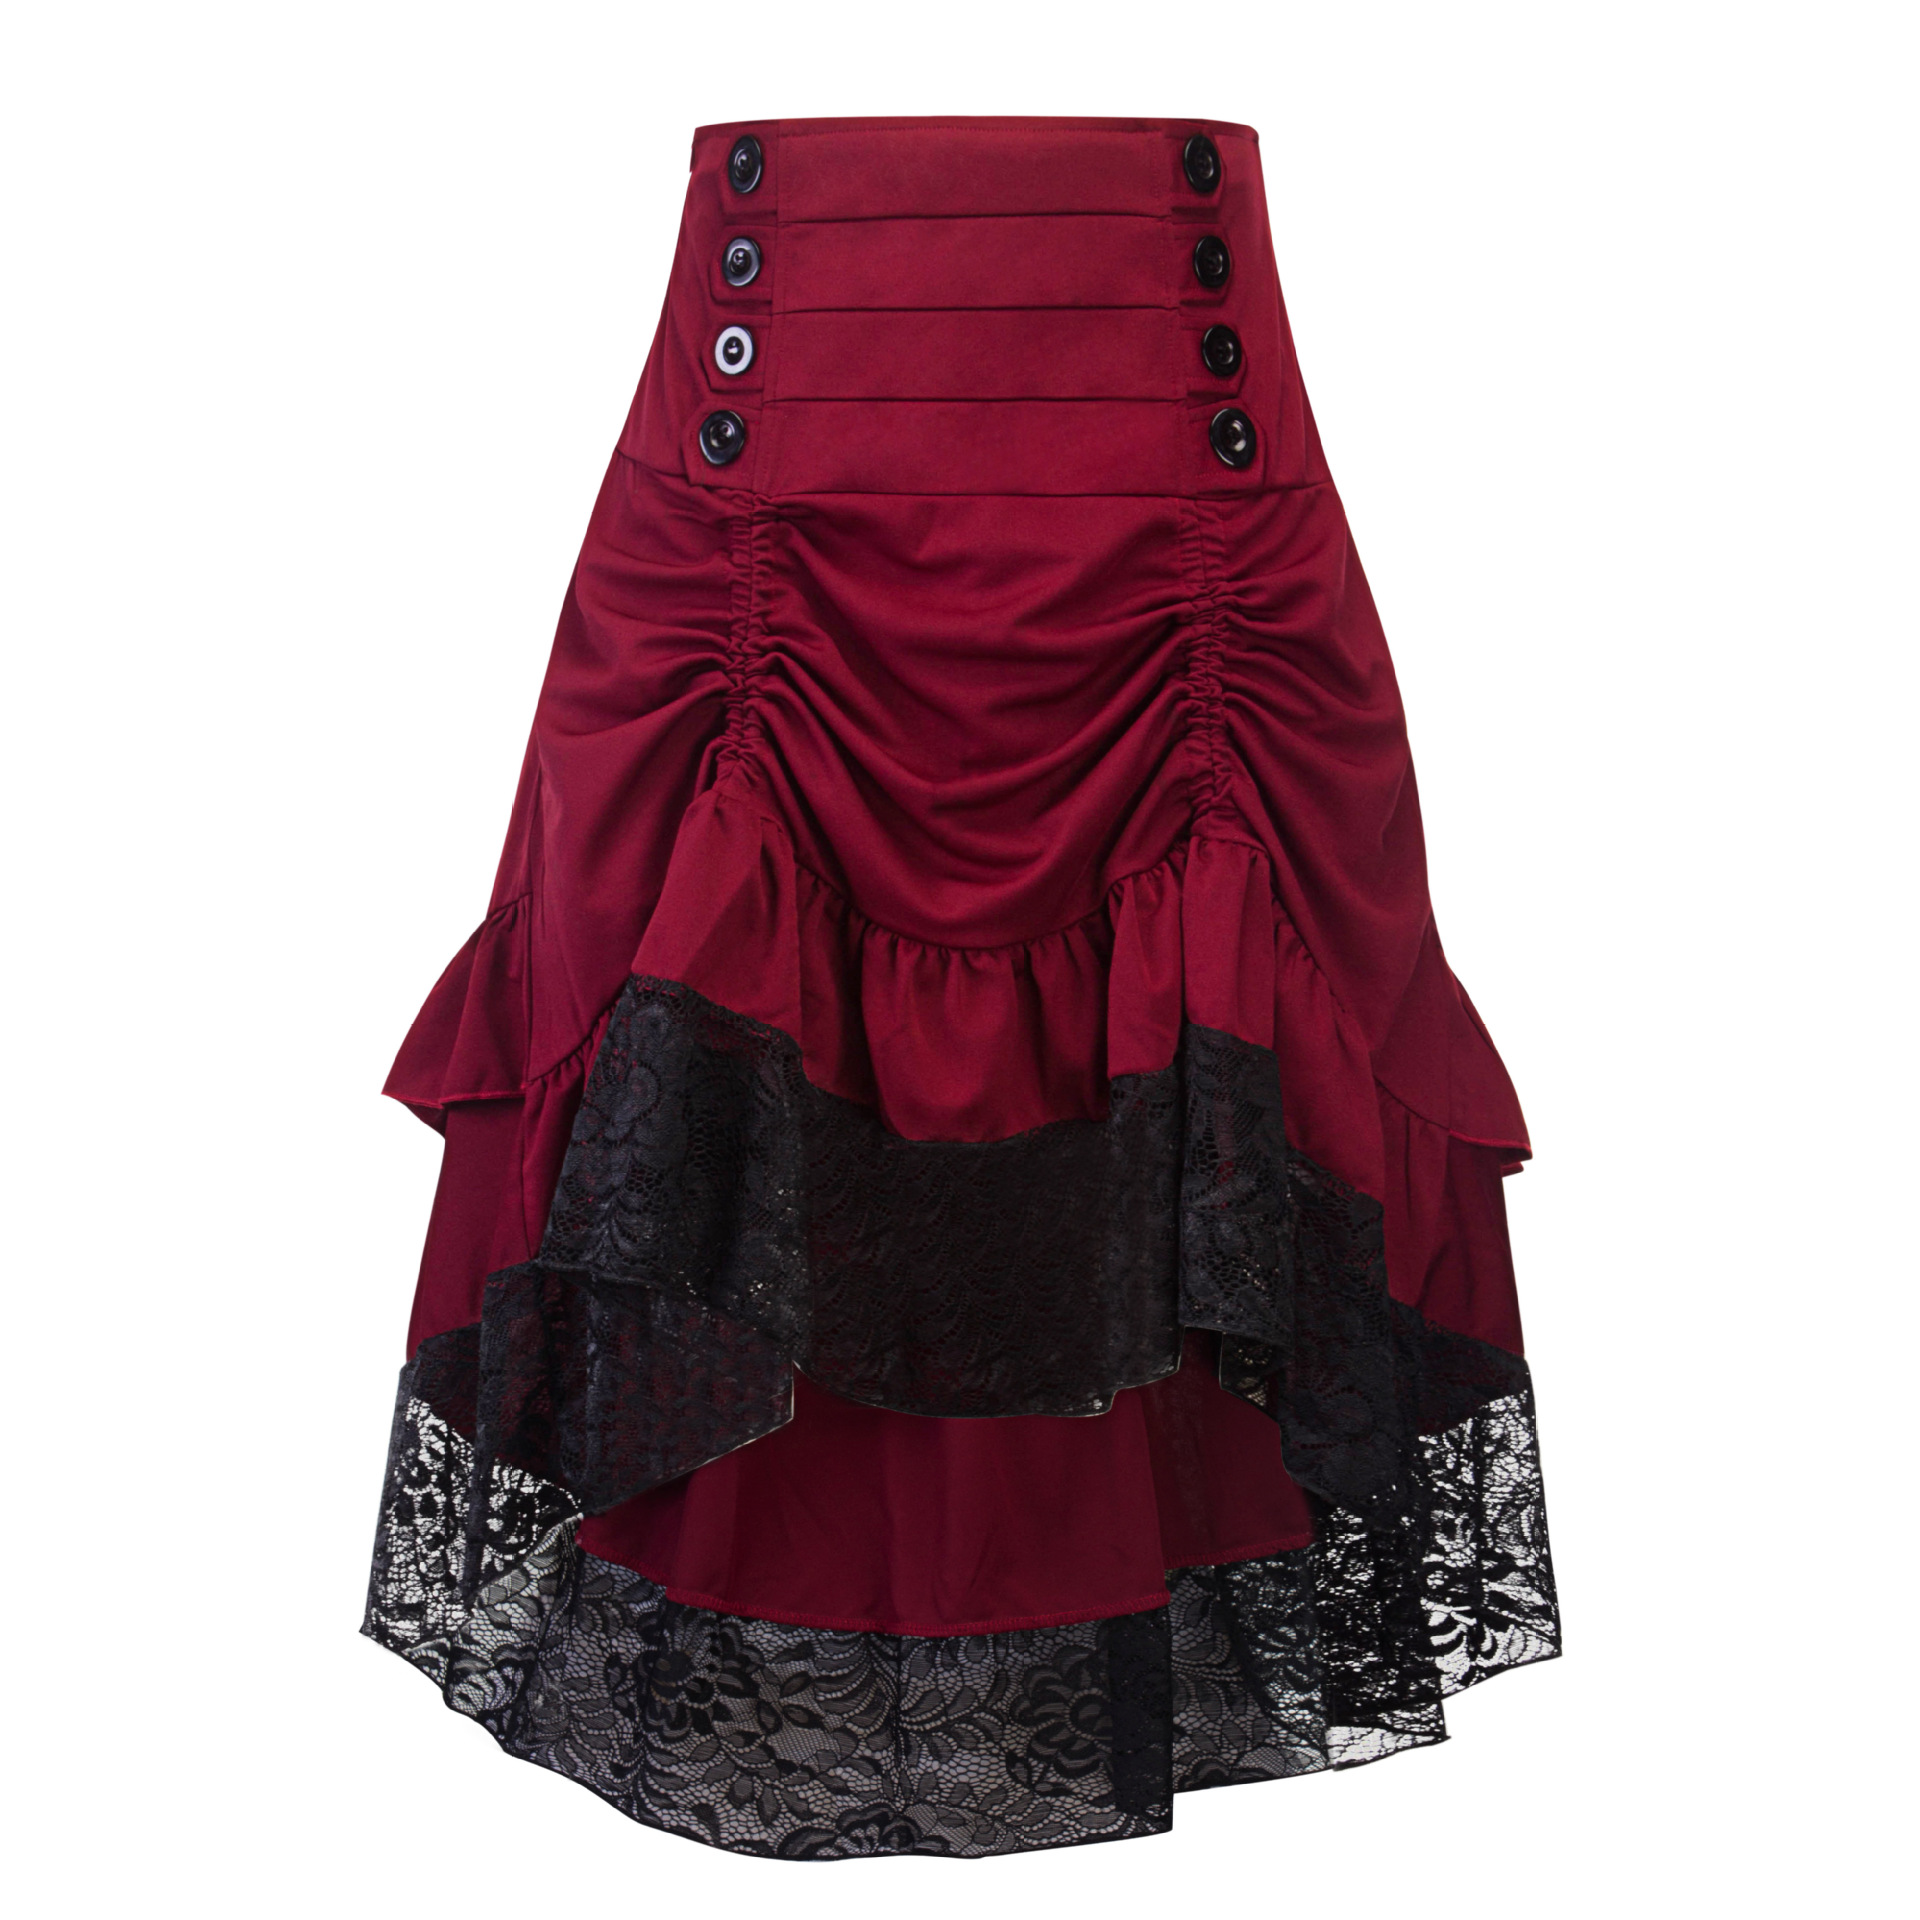 2020 S-2XL  Autumn And Winter New Style Women's Steampunk Clothing Party Club Wear Black Lace Hip Skirt